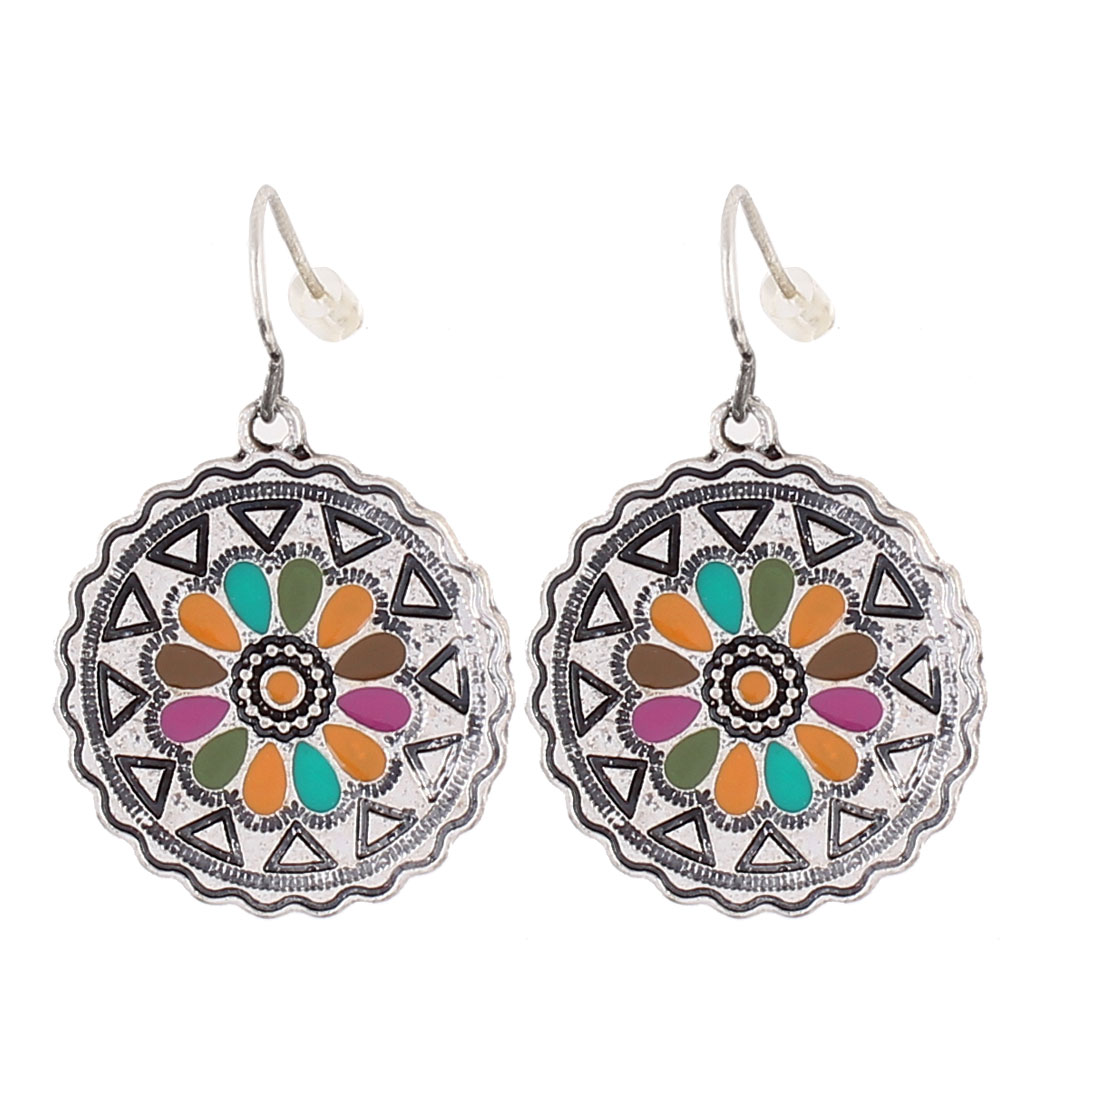 "Women Metal Filled Circle Dangling Pendant Hook Earrings Earbobs Colorful 1.4"" Length Pair"